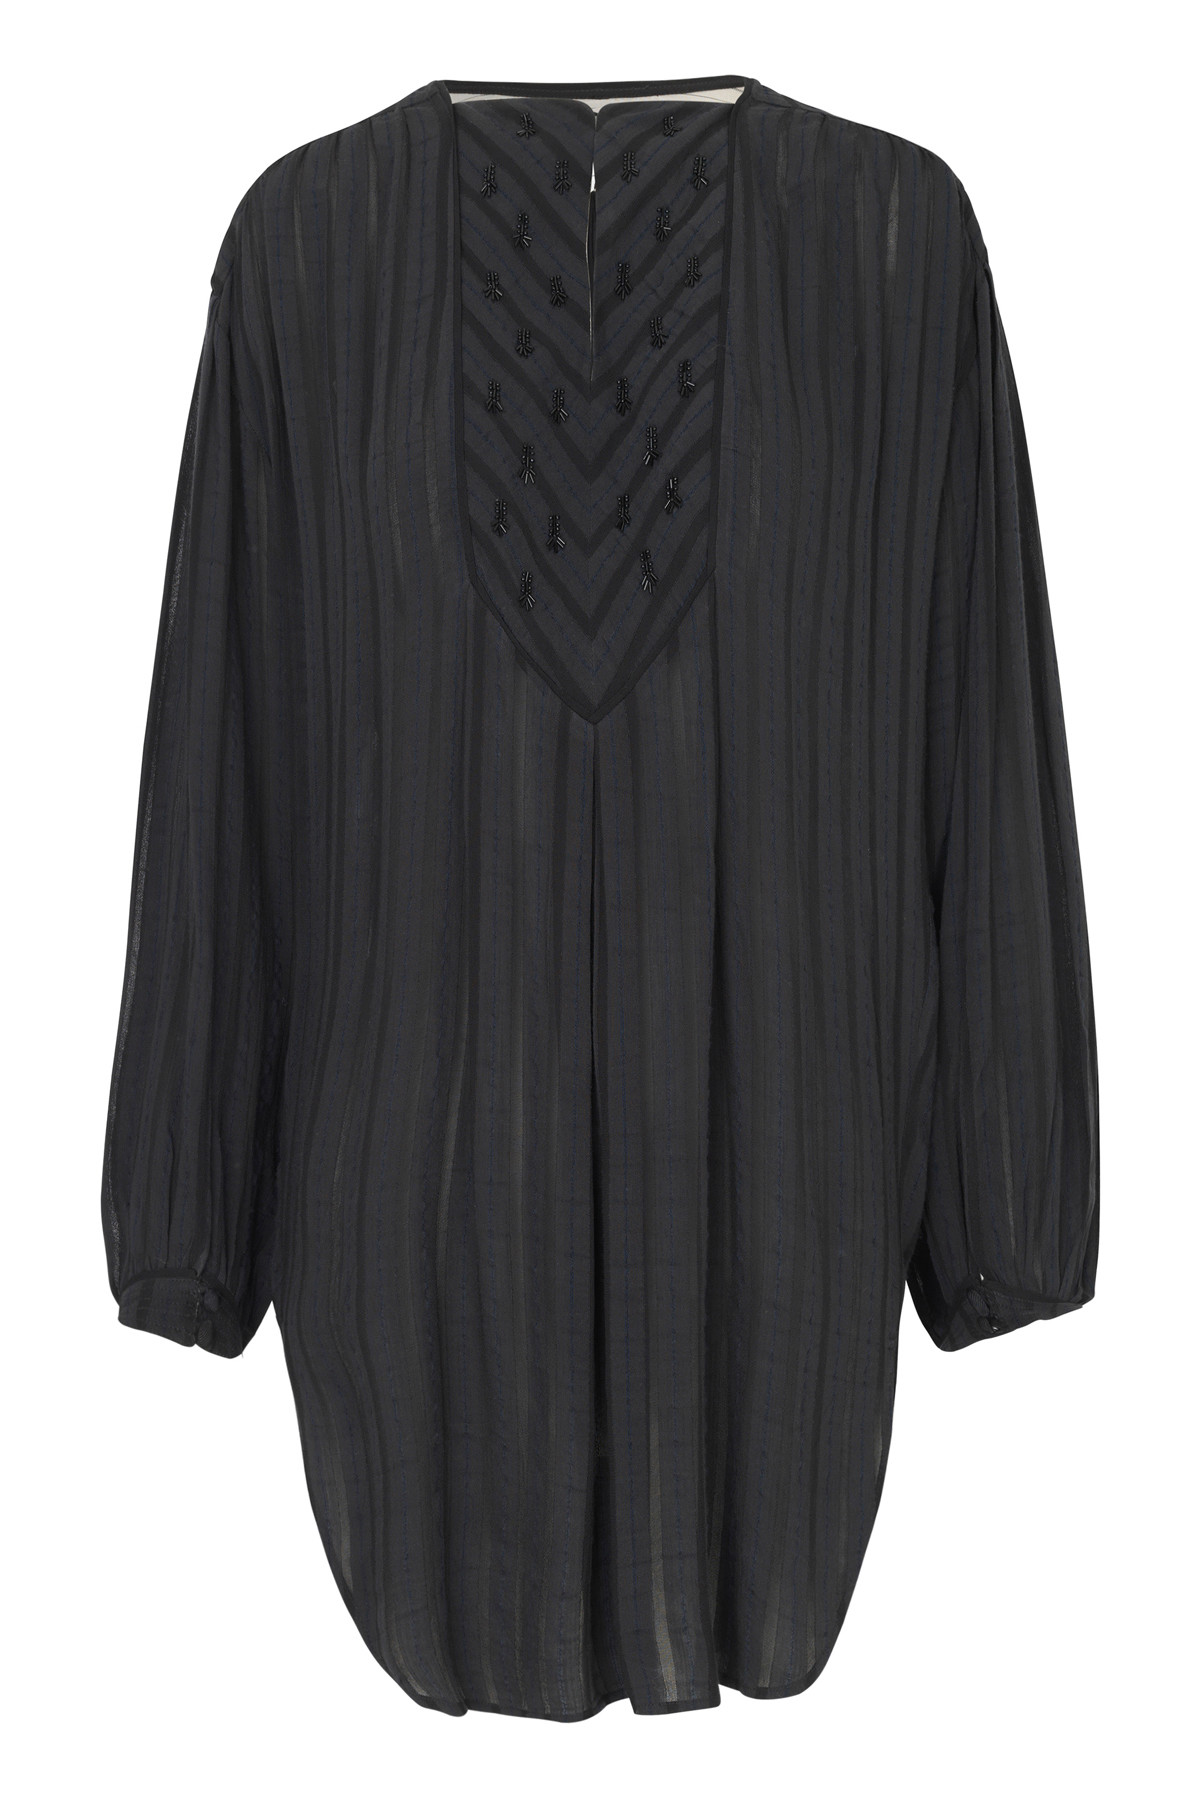 Image of   NOA NOA TUNIKA 1-8944-1 00000 (Black, 32)